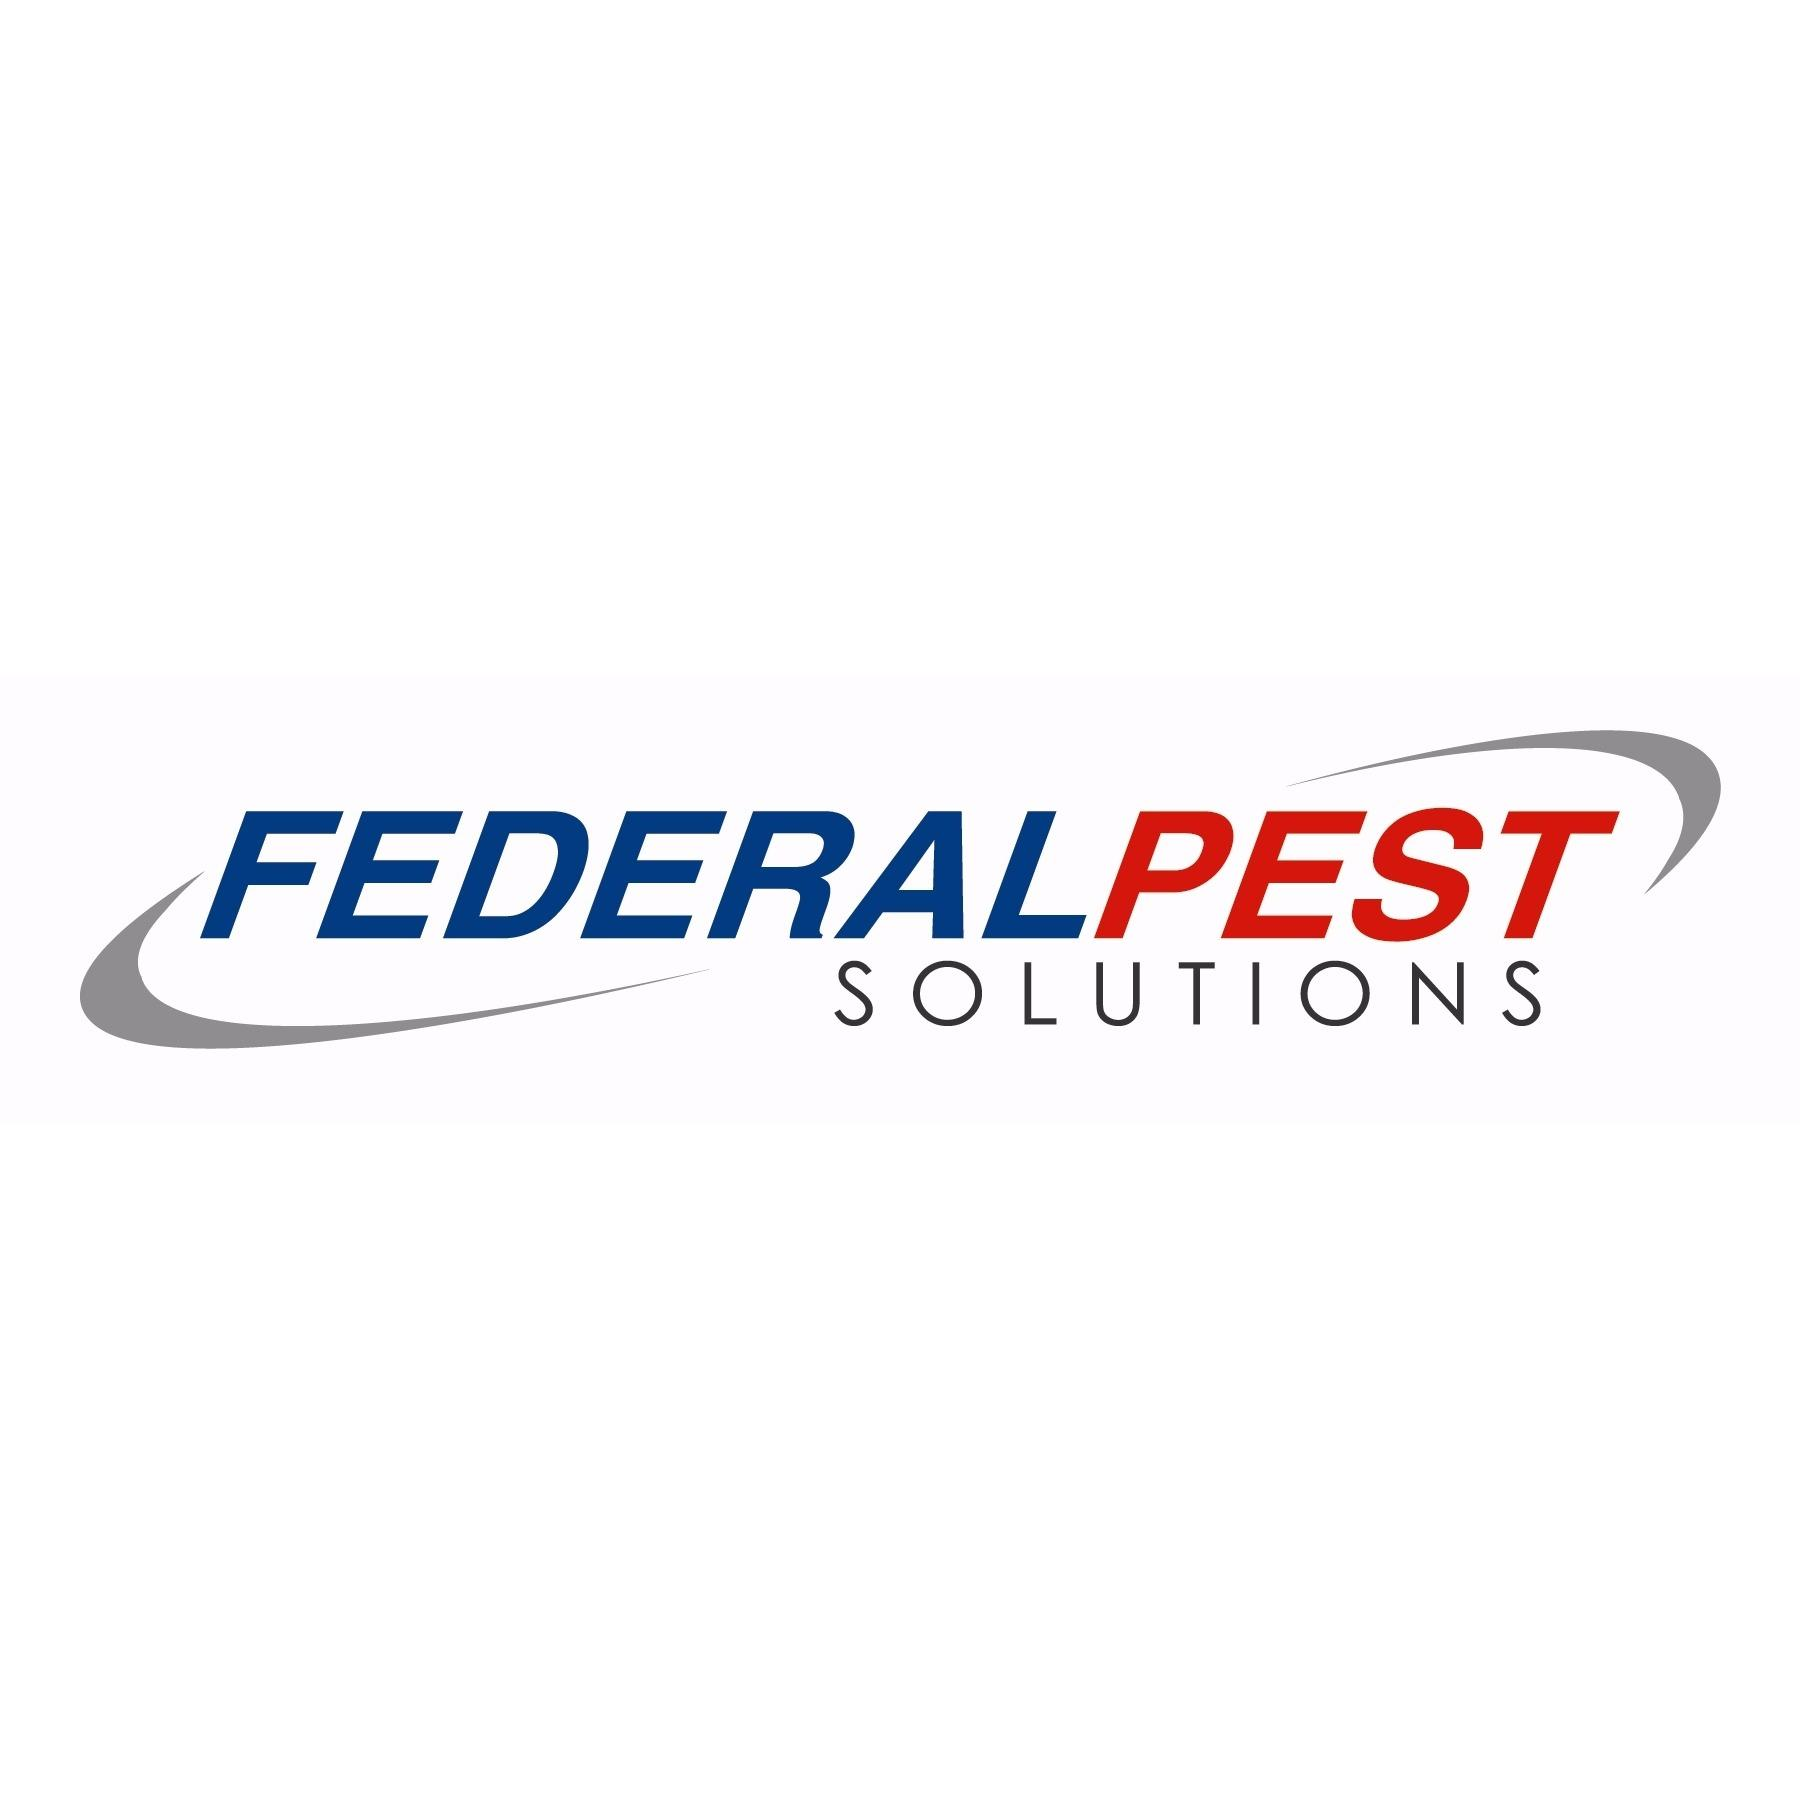 Federal Pest Solutions